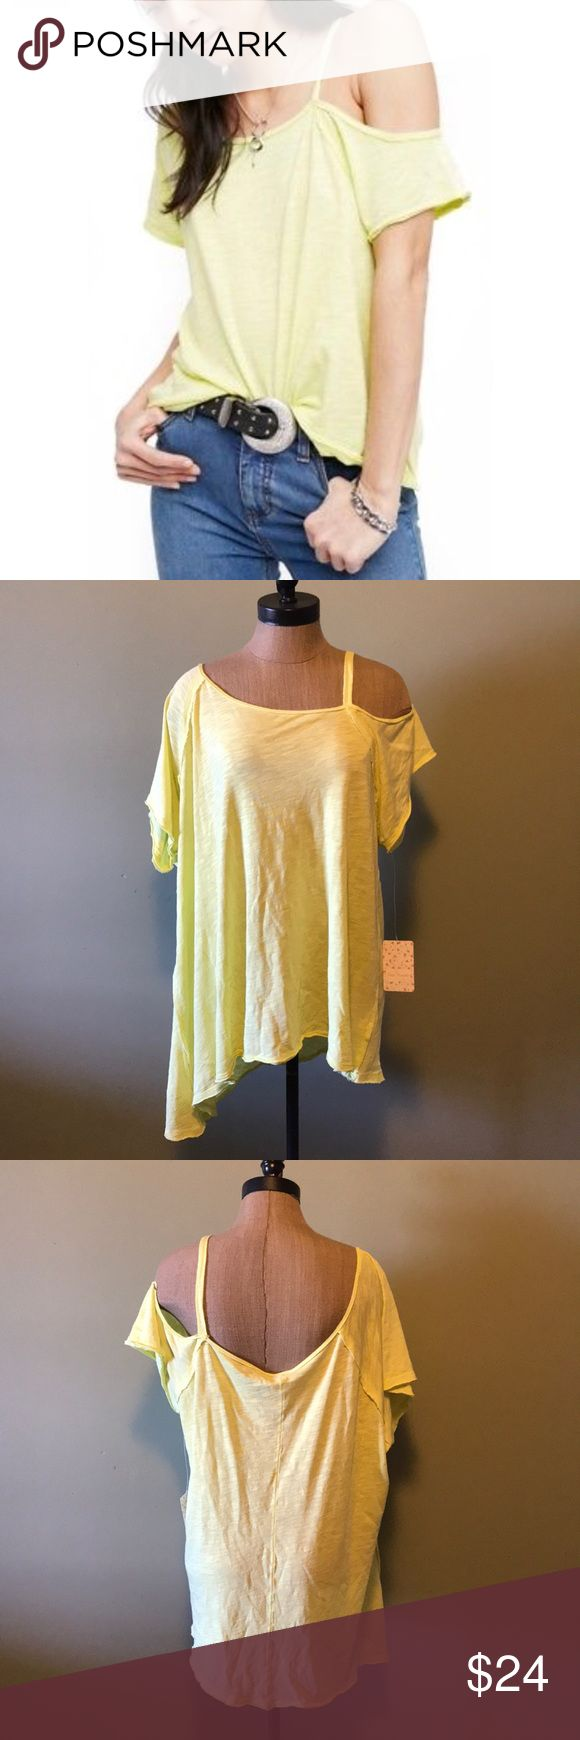 Free People Coraline Tee Neon Yellow size large New with Tags free people coraline tee. This is in a bright neon yellow/green color. Size large. Details and description in photo. Free People Tops Tees - Short Sleeve